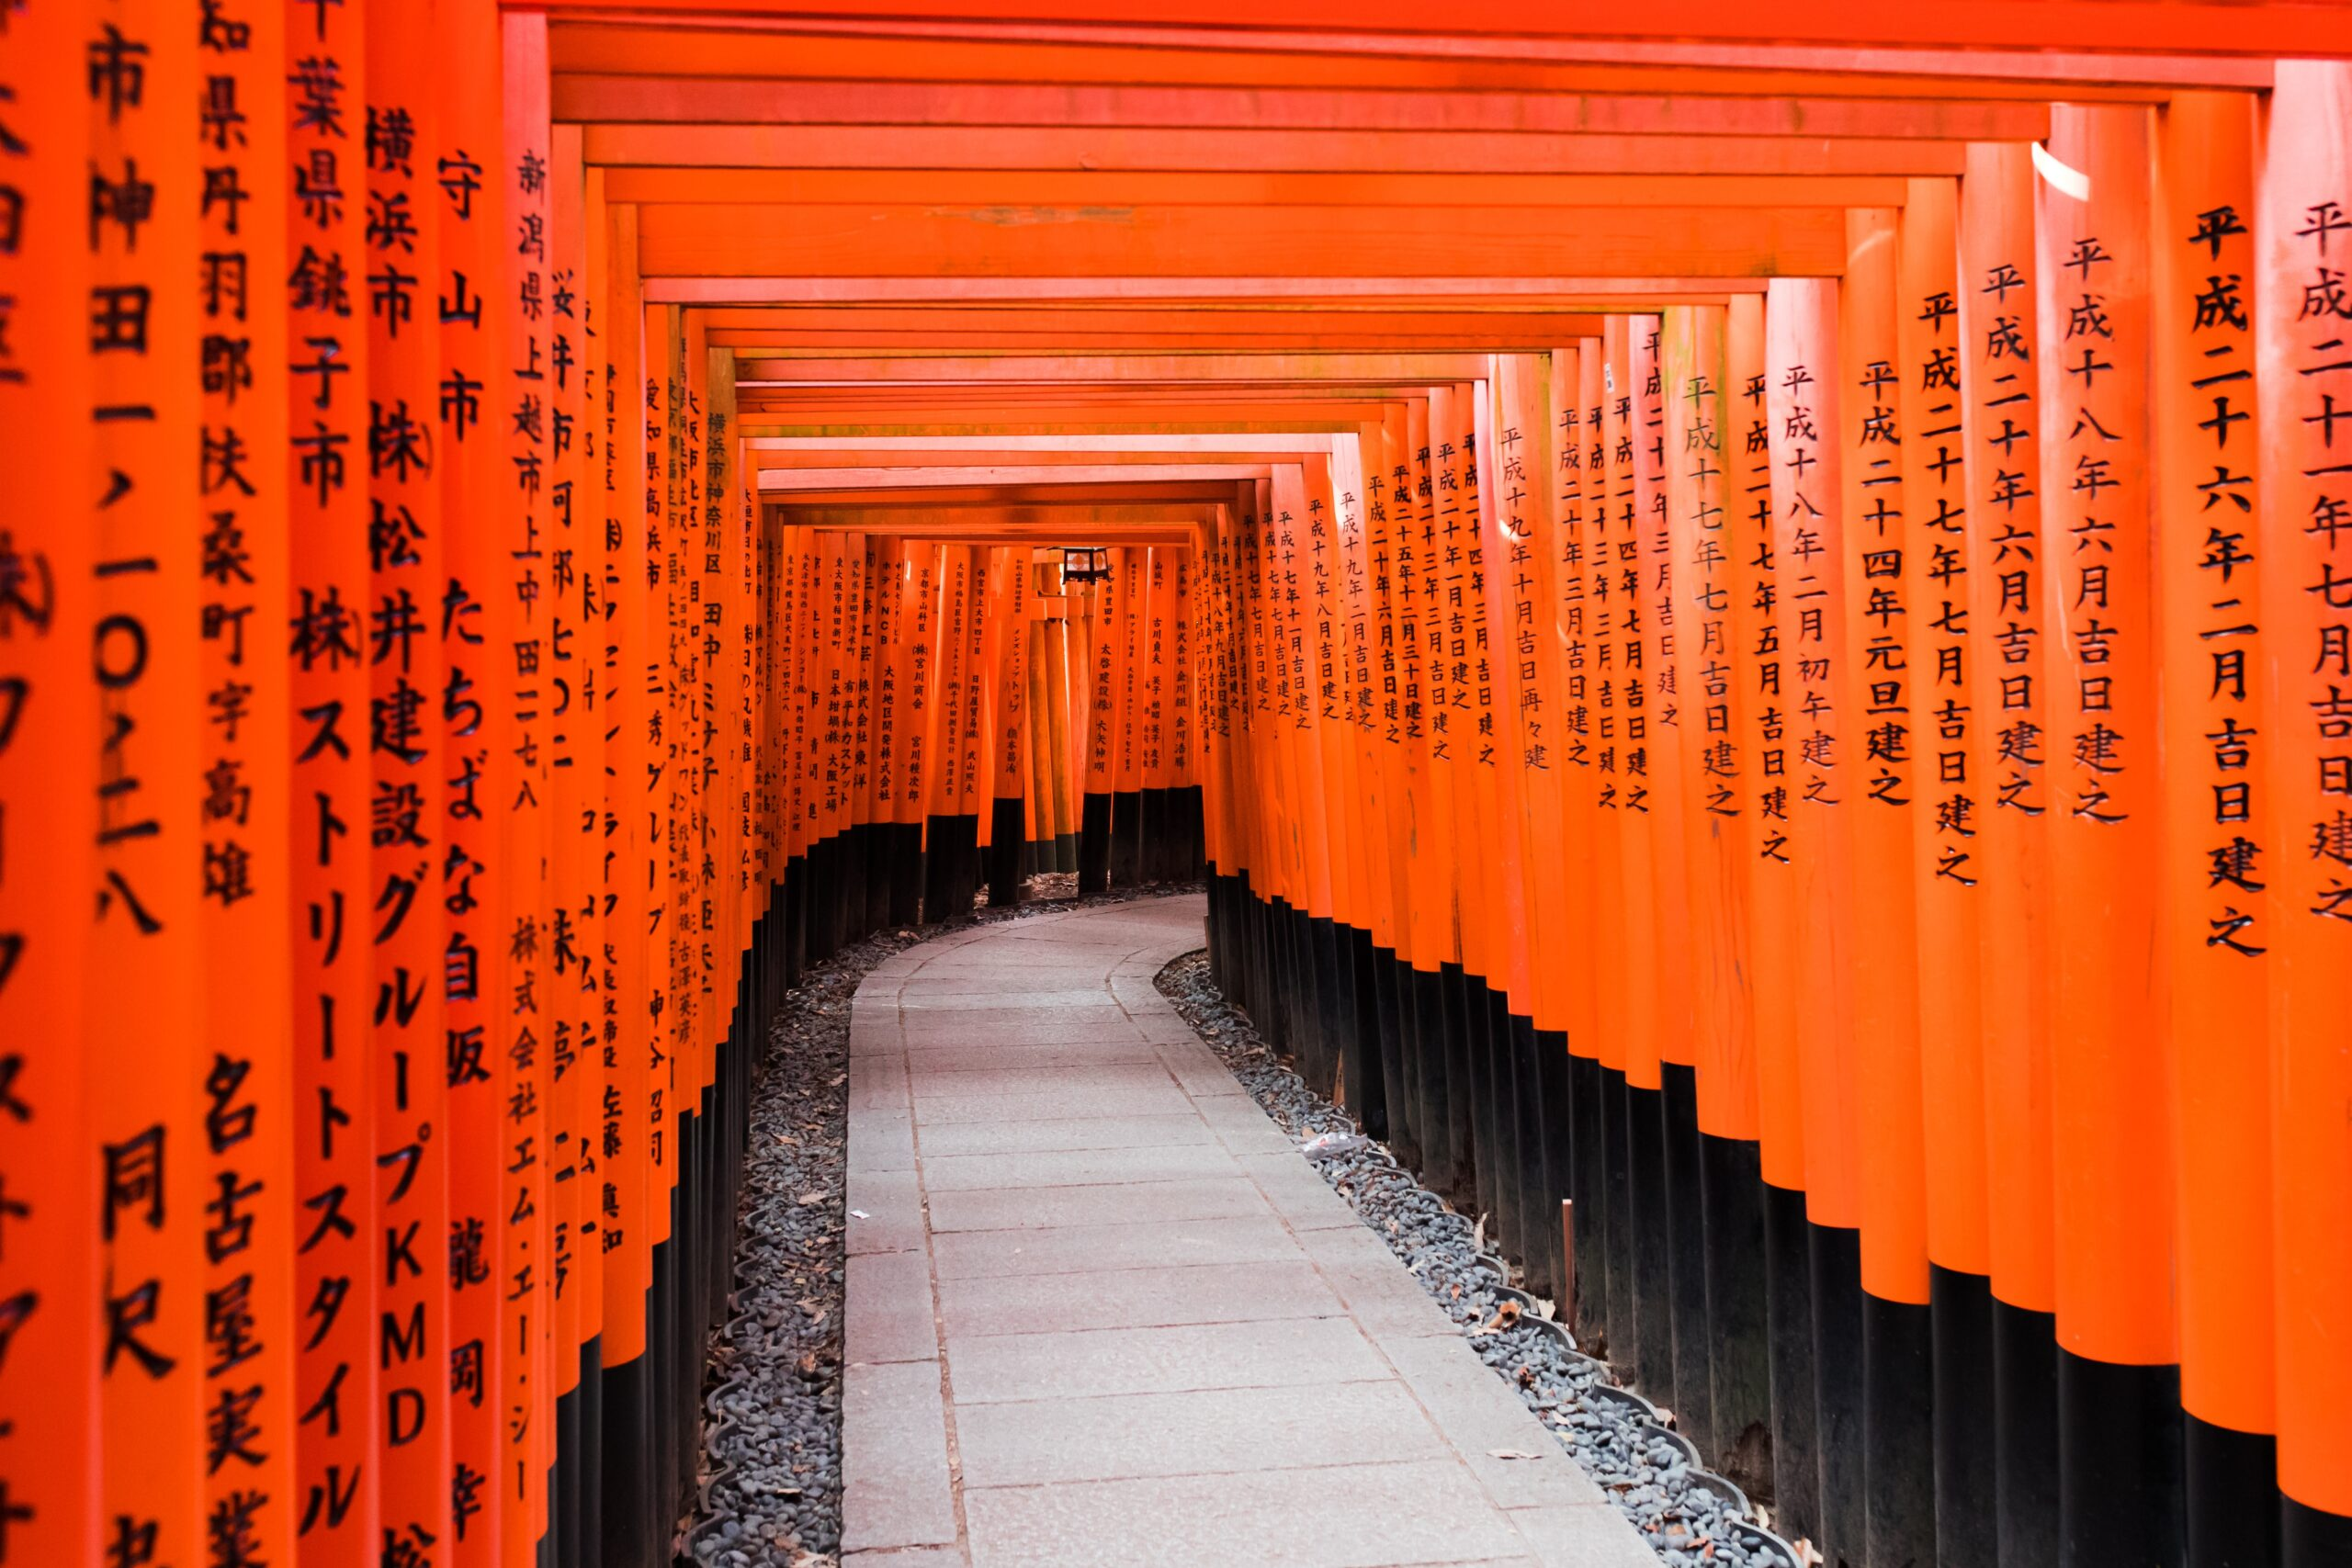 billy-pasco-Orange scroll walls with Japanese calligraphy forming walls with concrete paved path between-unsplash